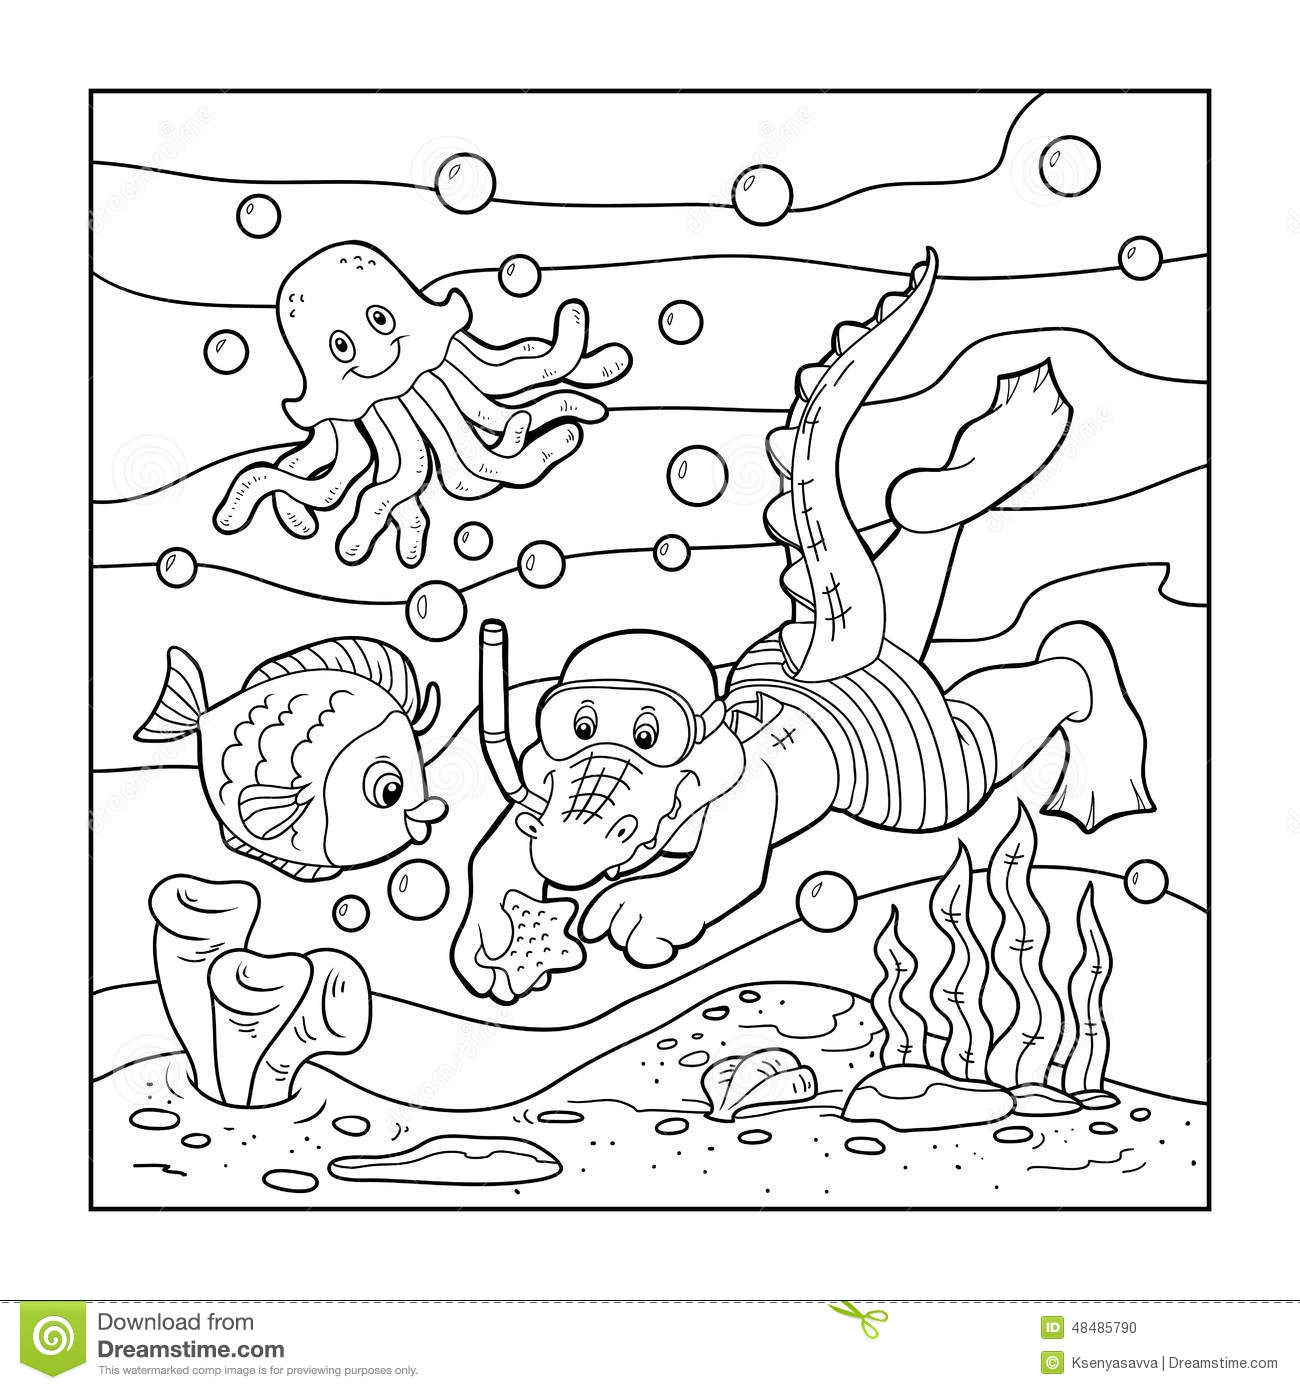 ocean bottom coloring pages-#8